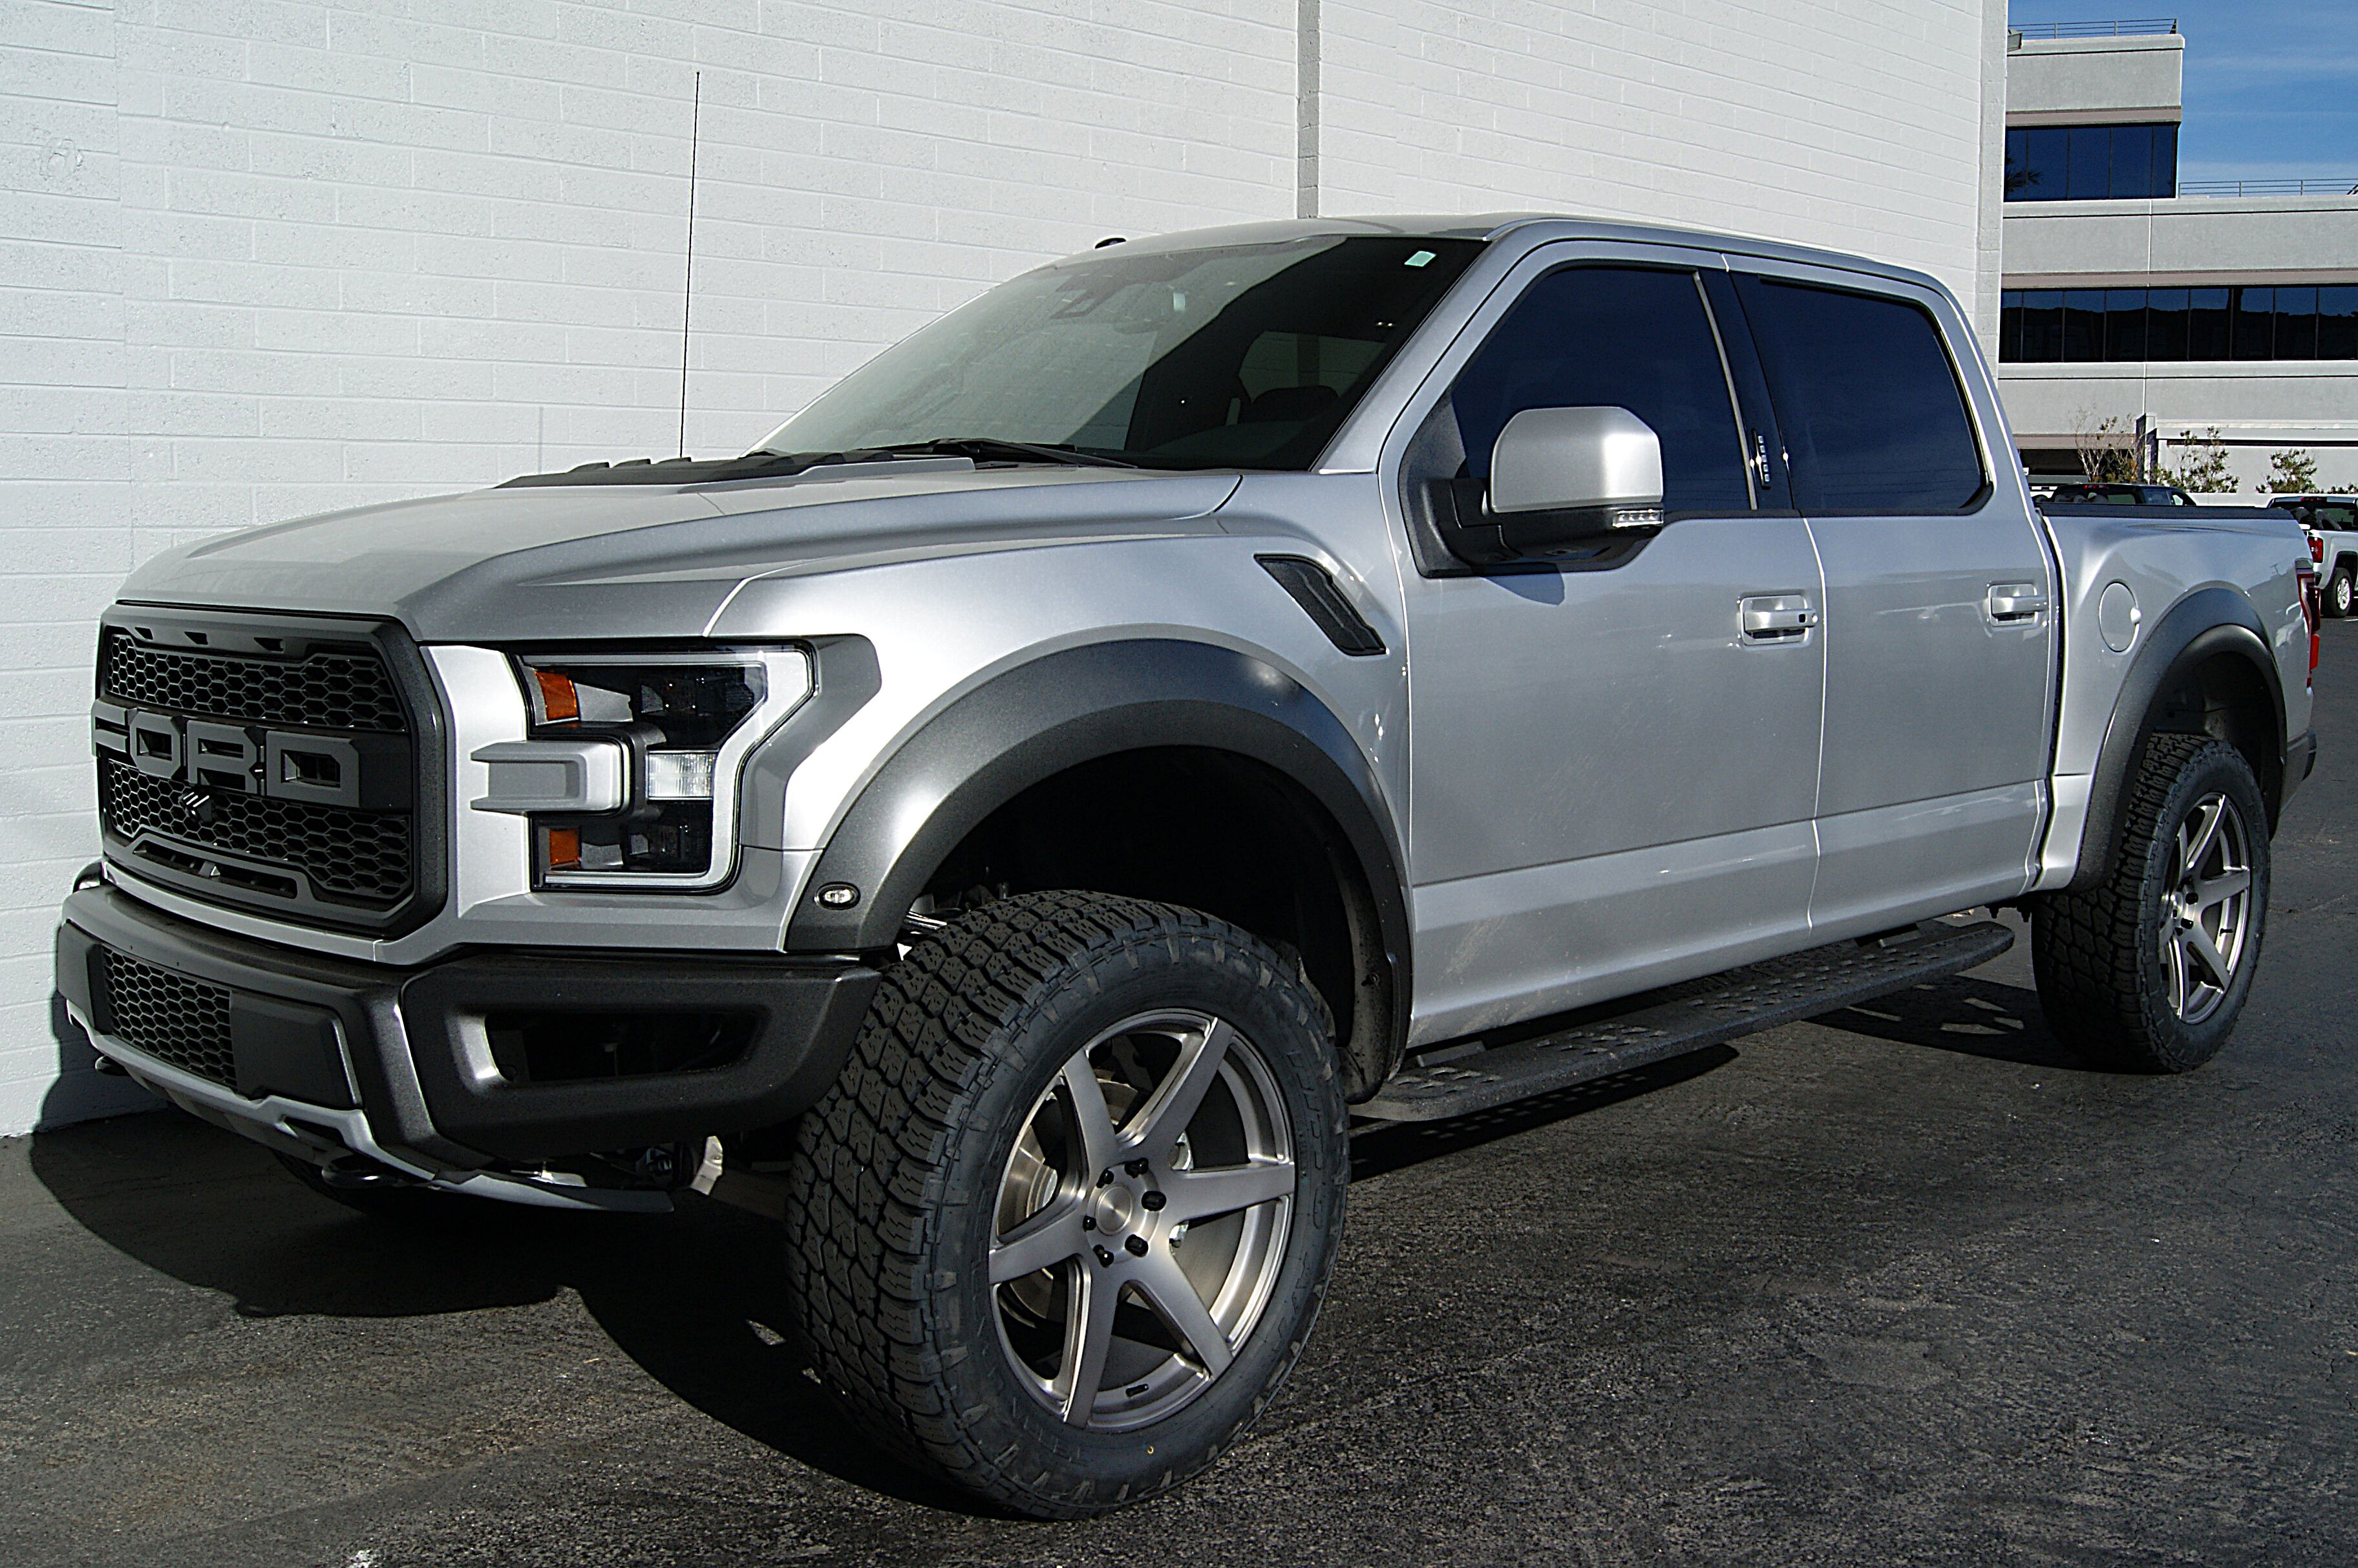 2017 ford raptor silver 22x9 5 dub 6six wheels in brushed double dark tint